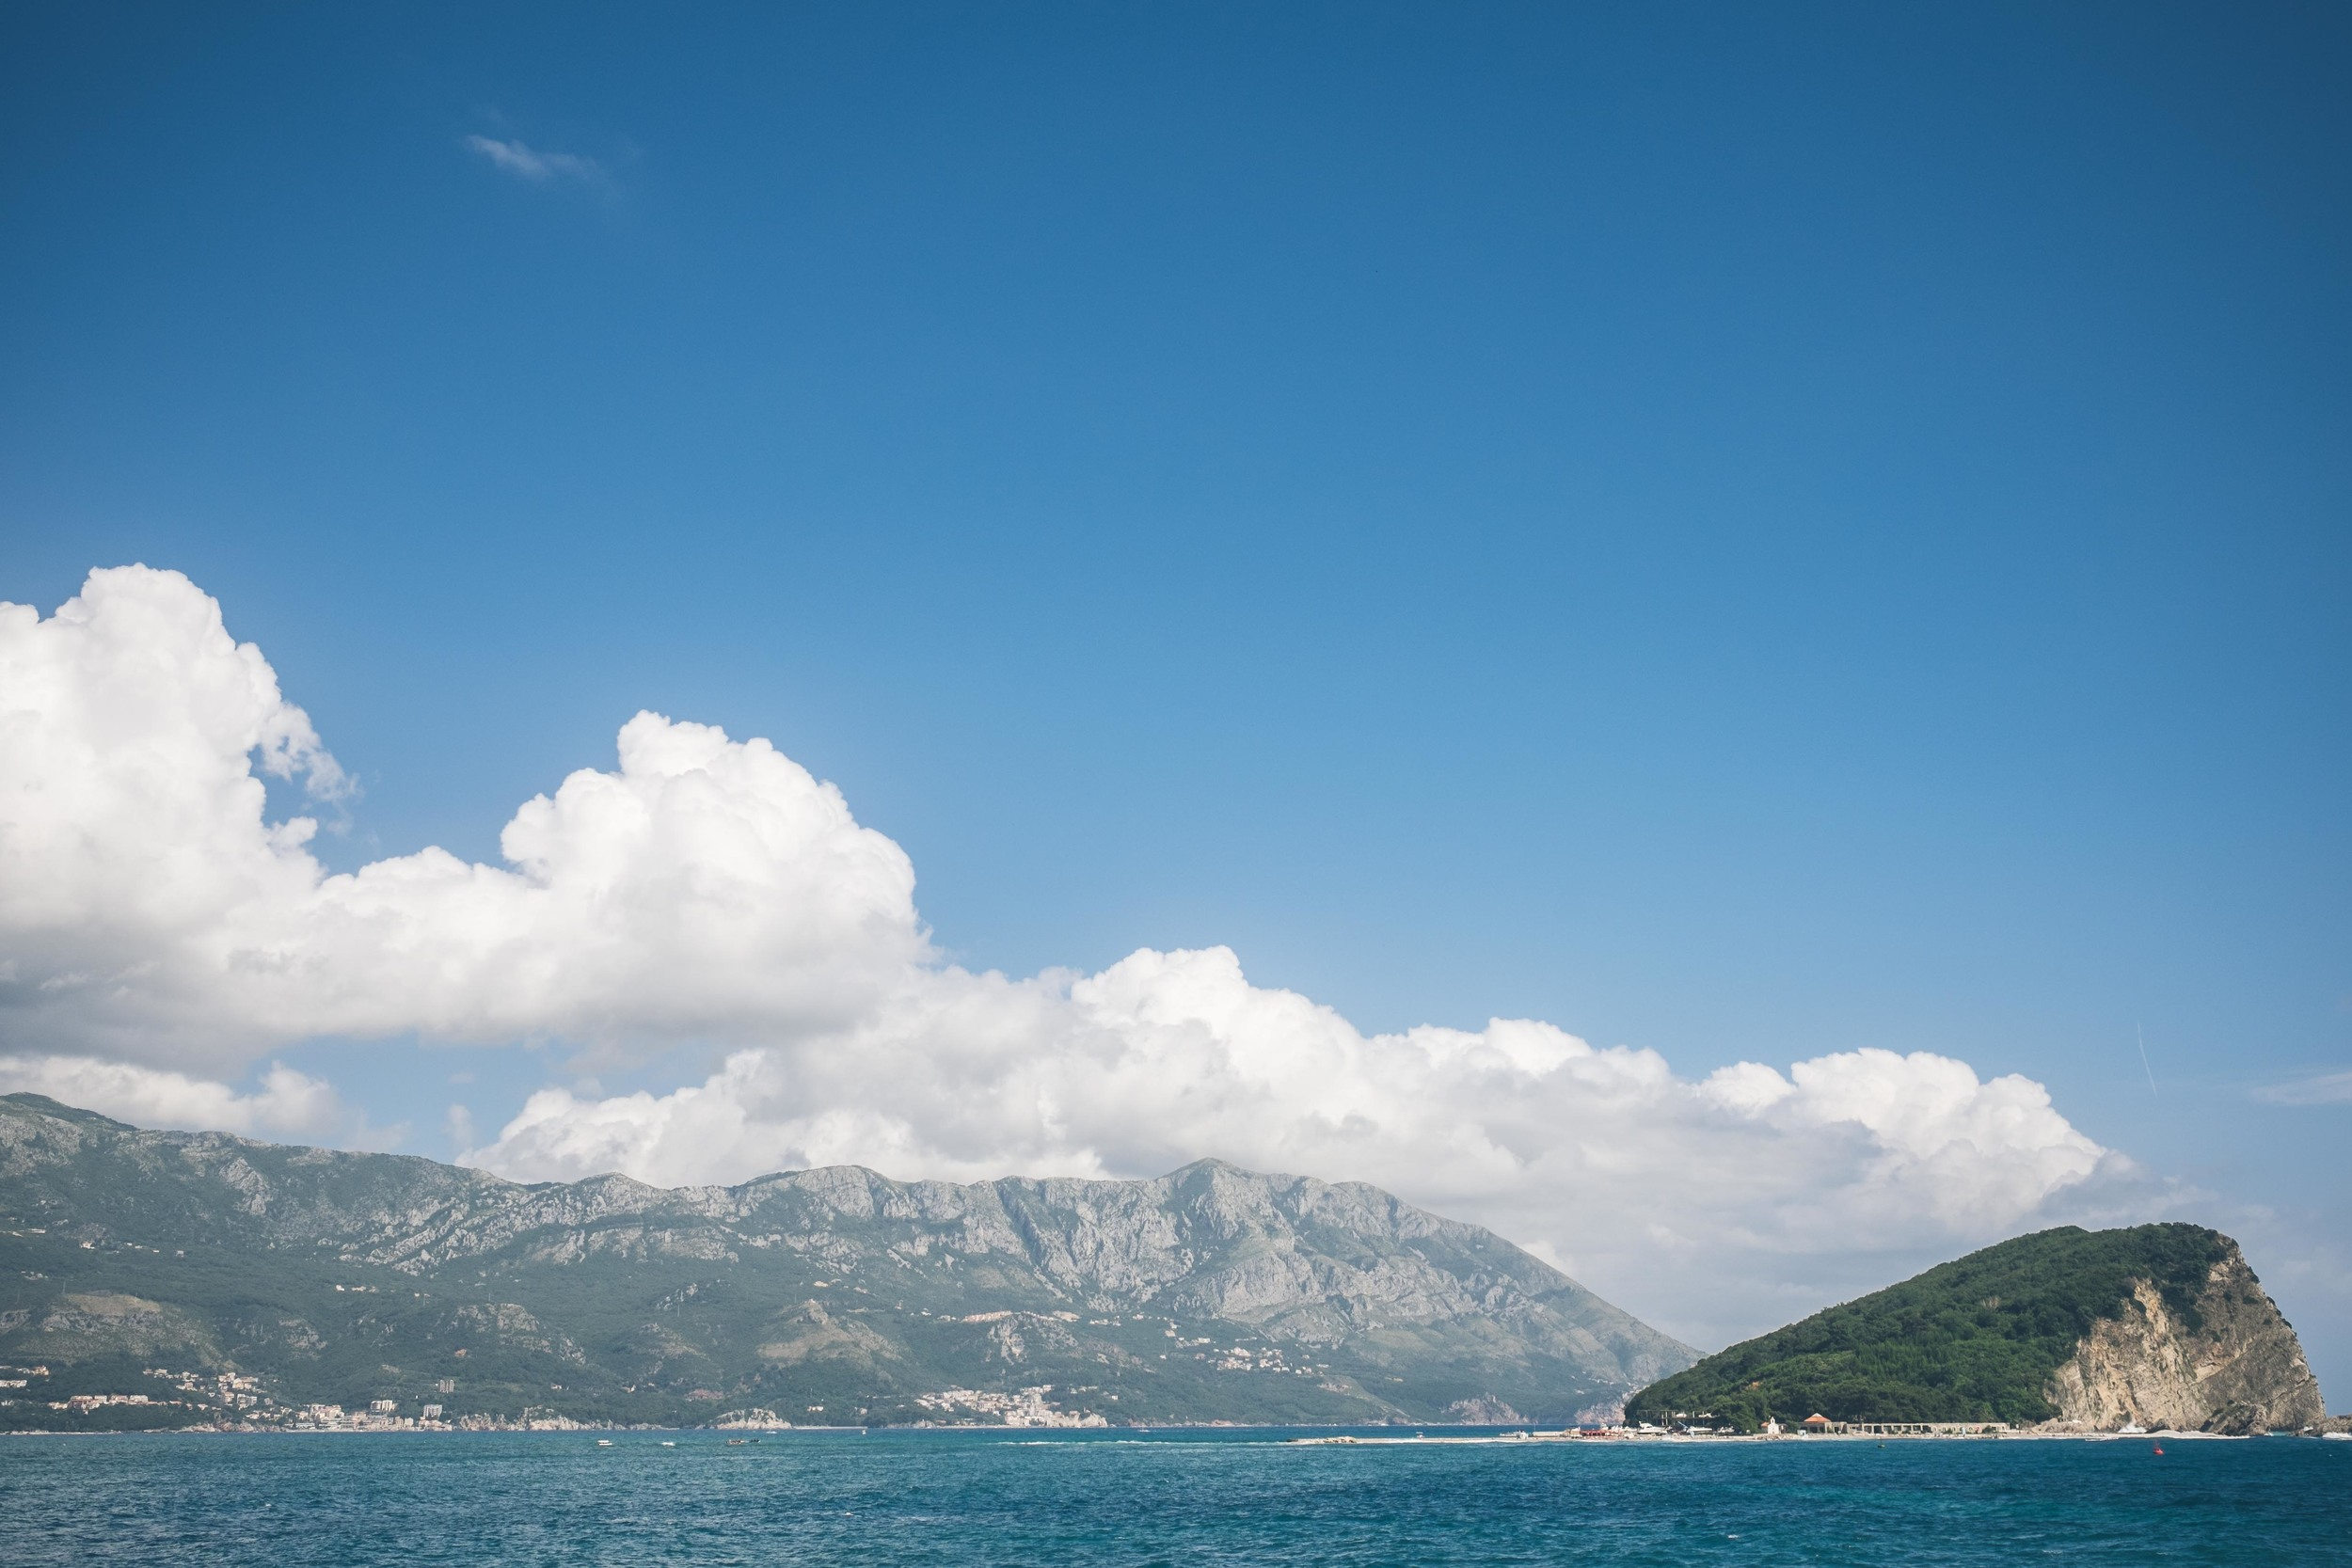 The Adriatic coastline of Budva